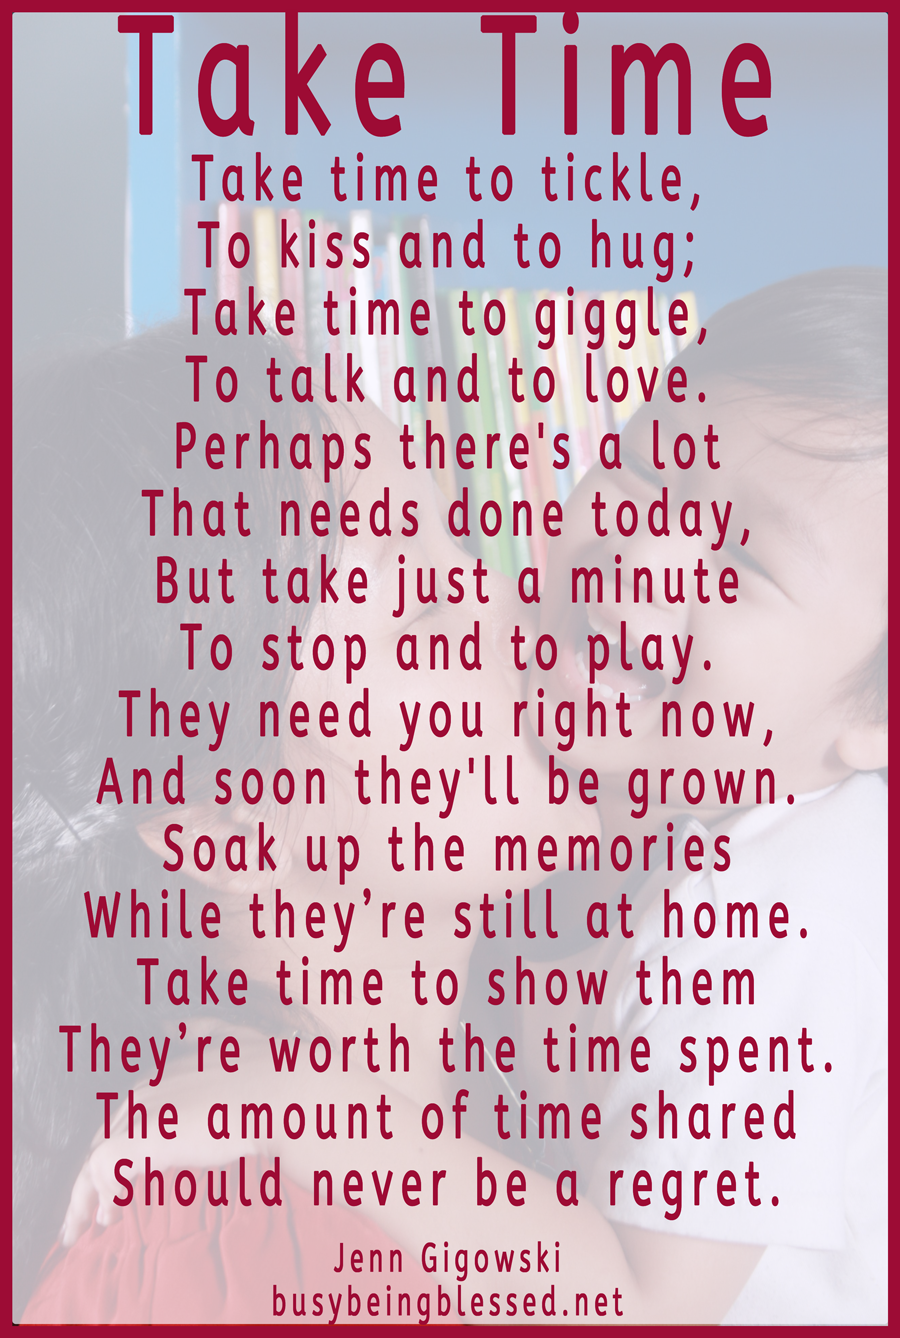 """""""Take Time"""" by Jenn Gigowski has been used with permission and is from http://www.busybeingblessed.net. There is a free printable of the poem for subscribers to www.busybeingblessed.net; please click on the image for the direct link."""